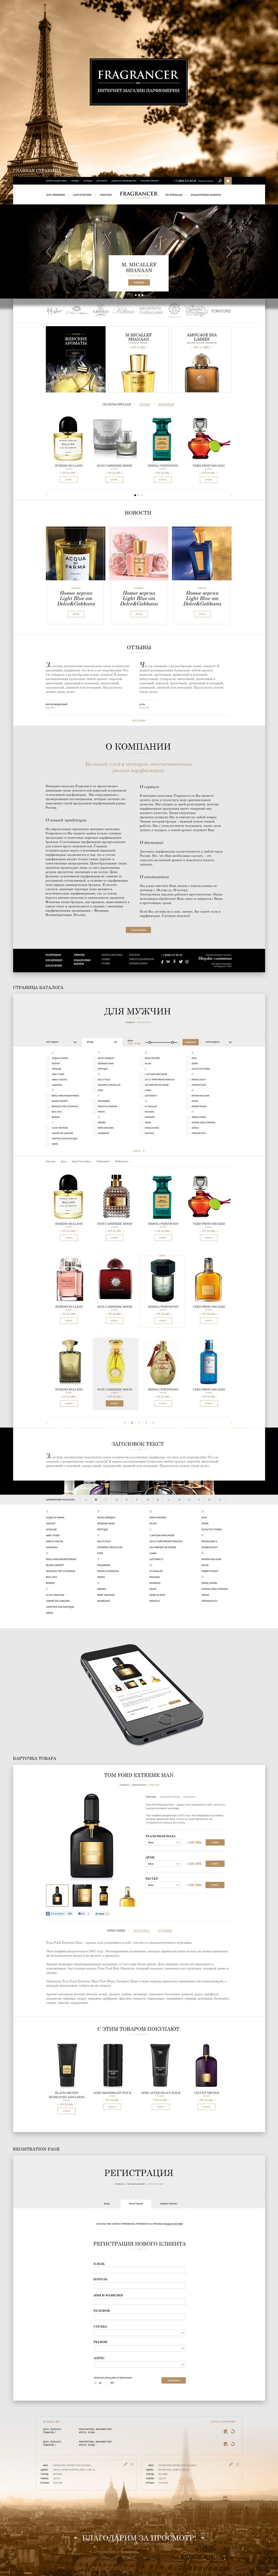 Developed online store luxury perfumes. Unique web design. #shopdev, #opencart…